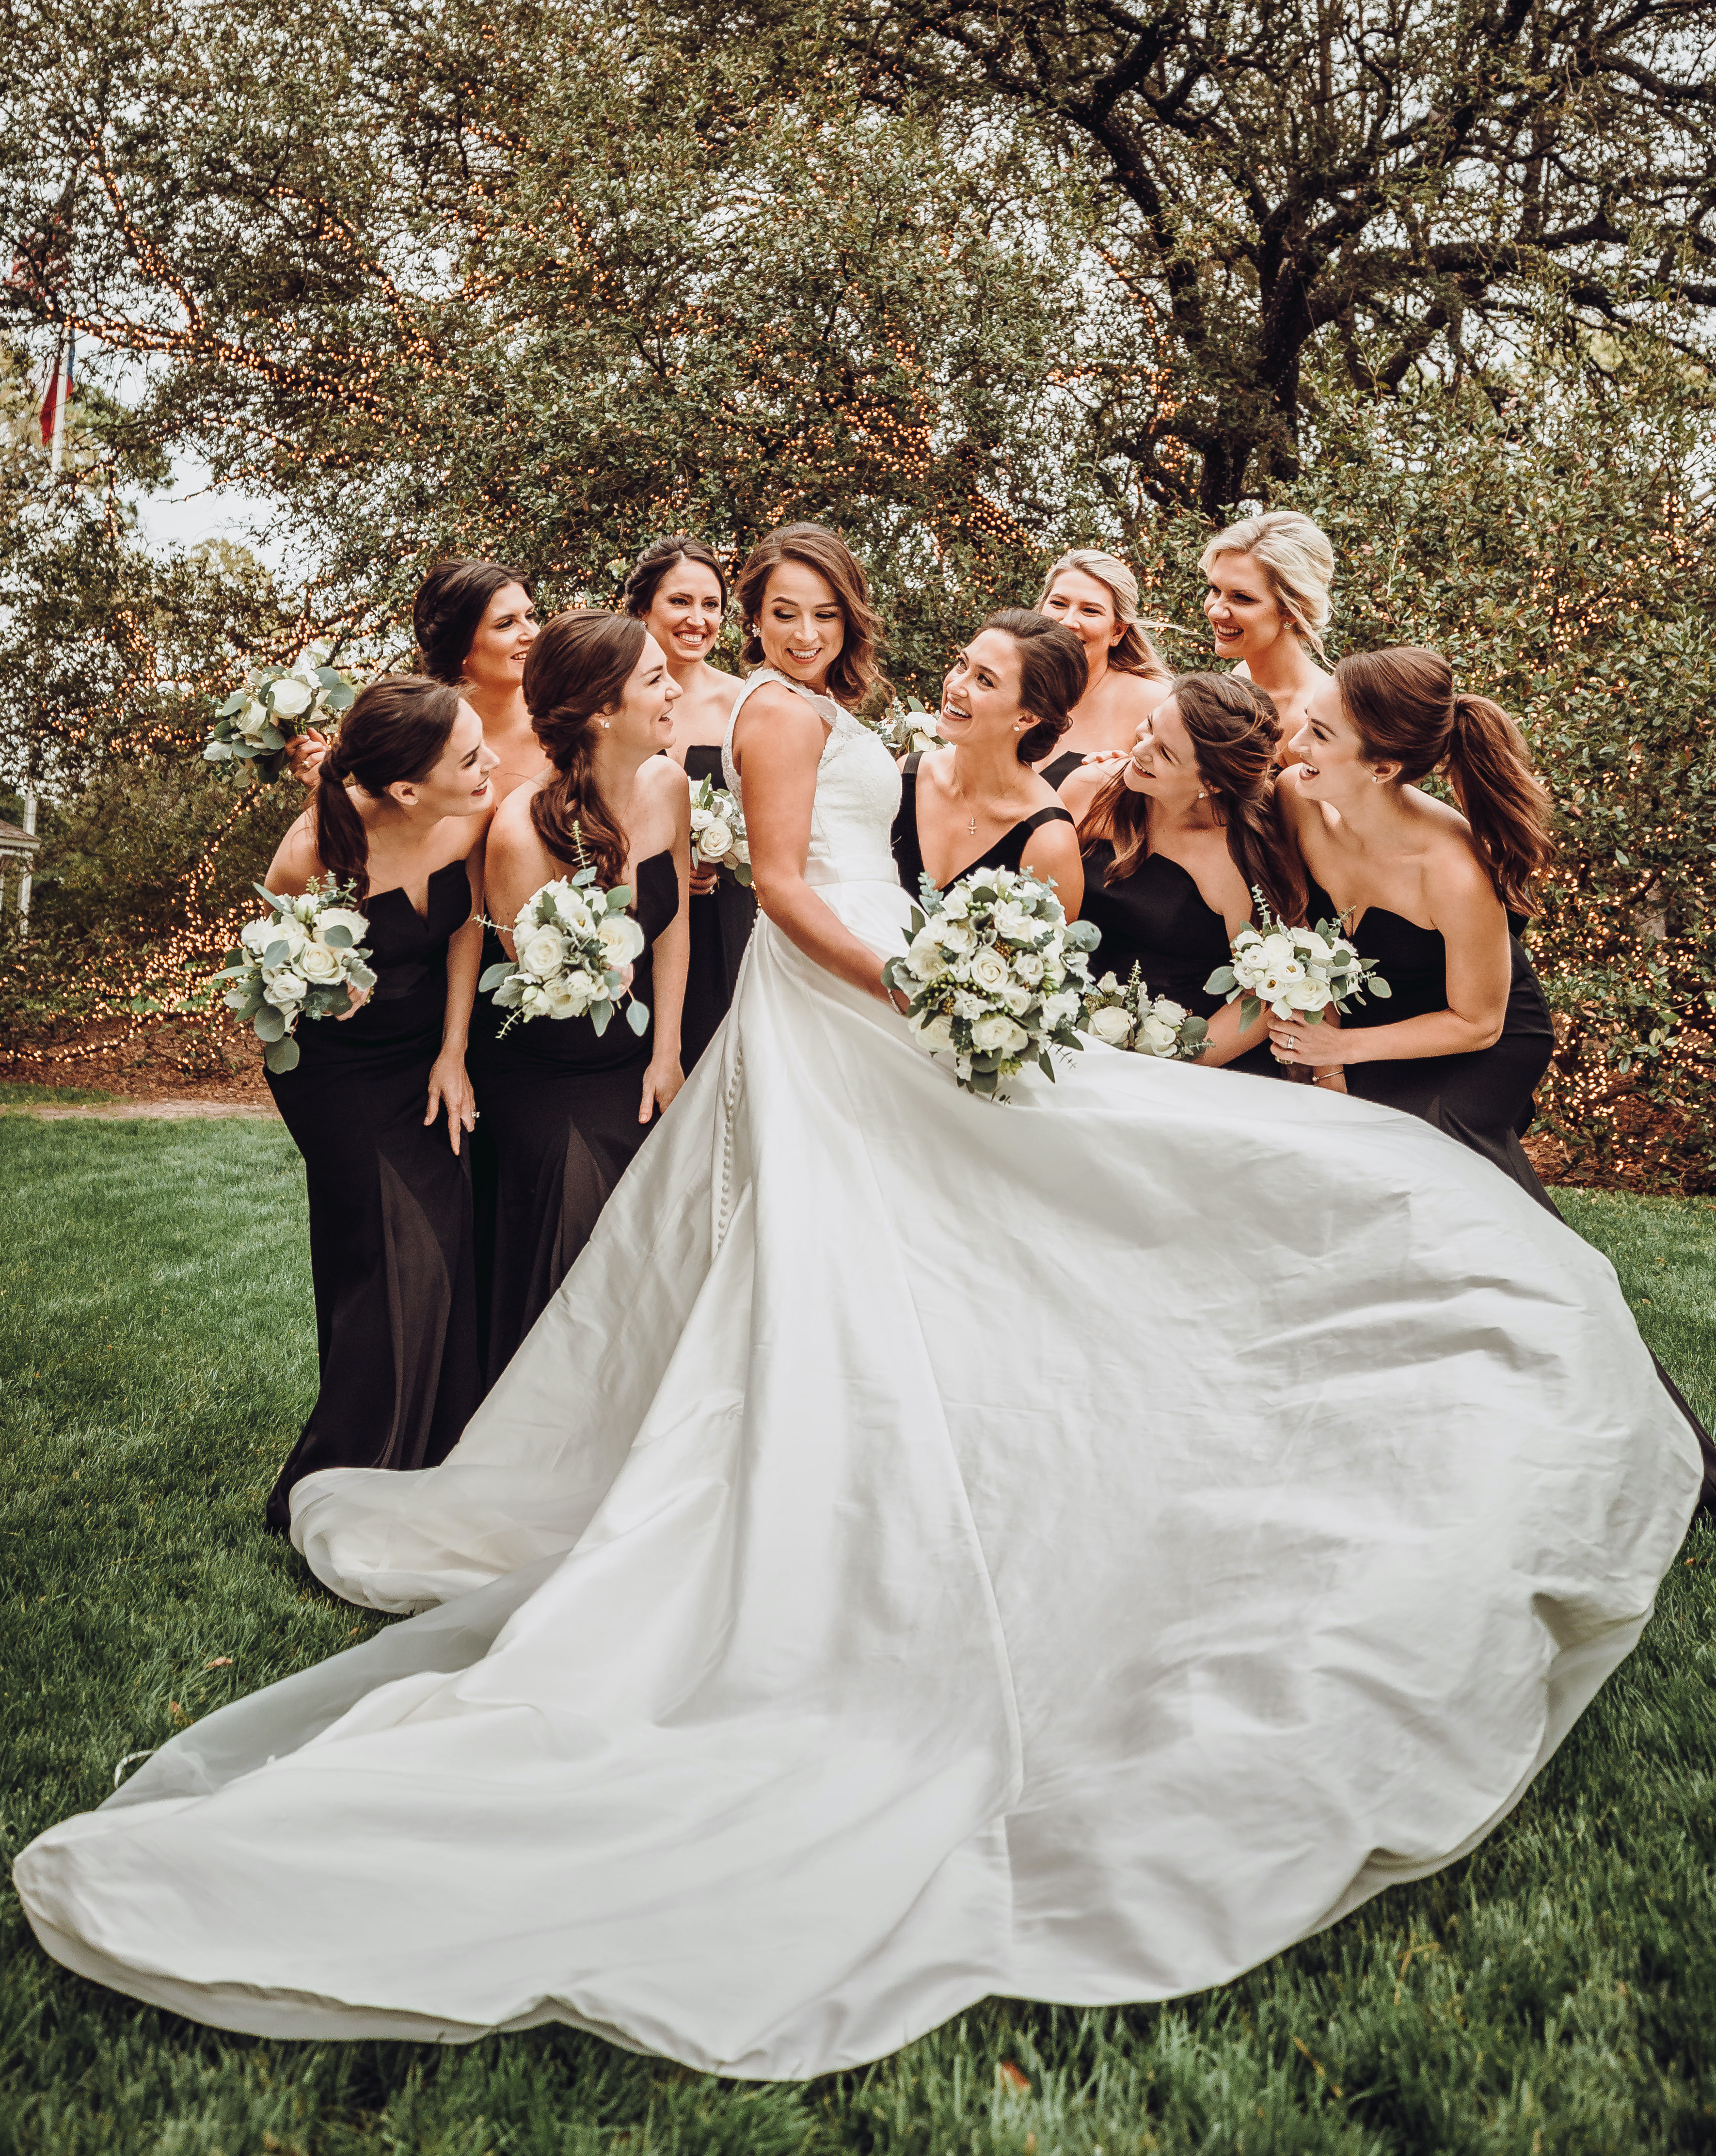 Bride showing off long, elegant wedding gown train as bridesmaids dressed in black admire and smile.